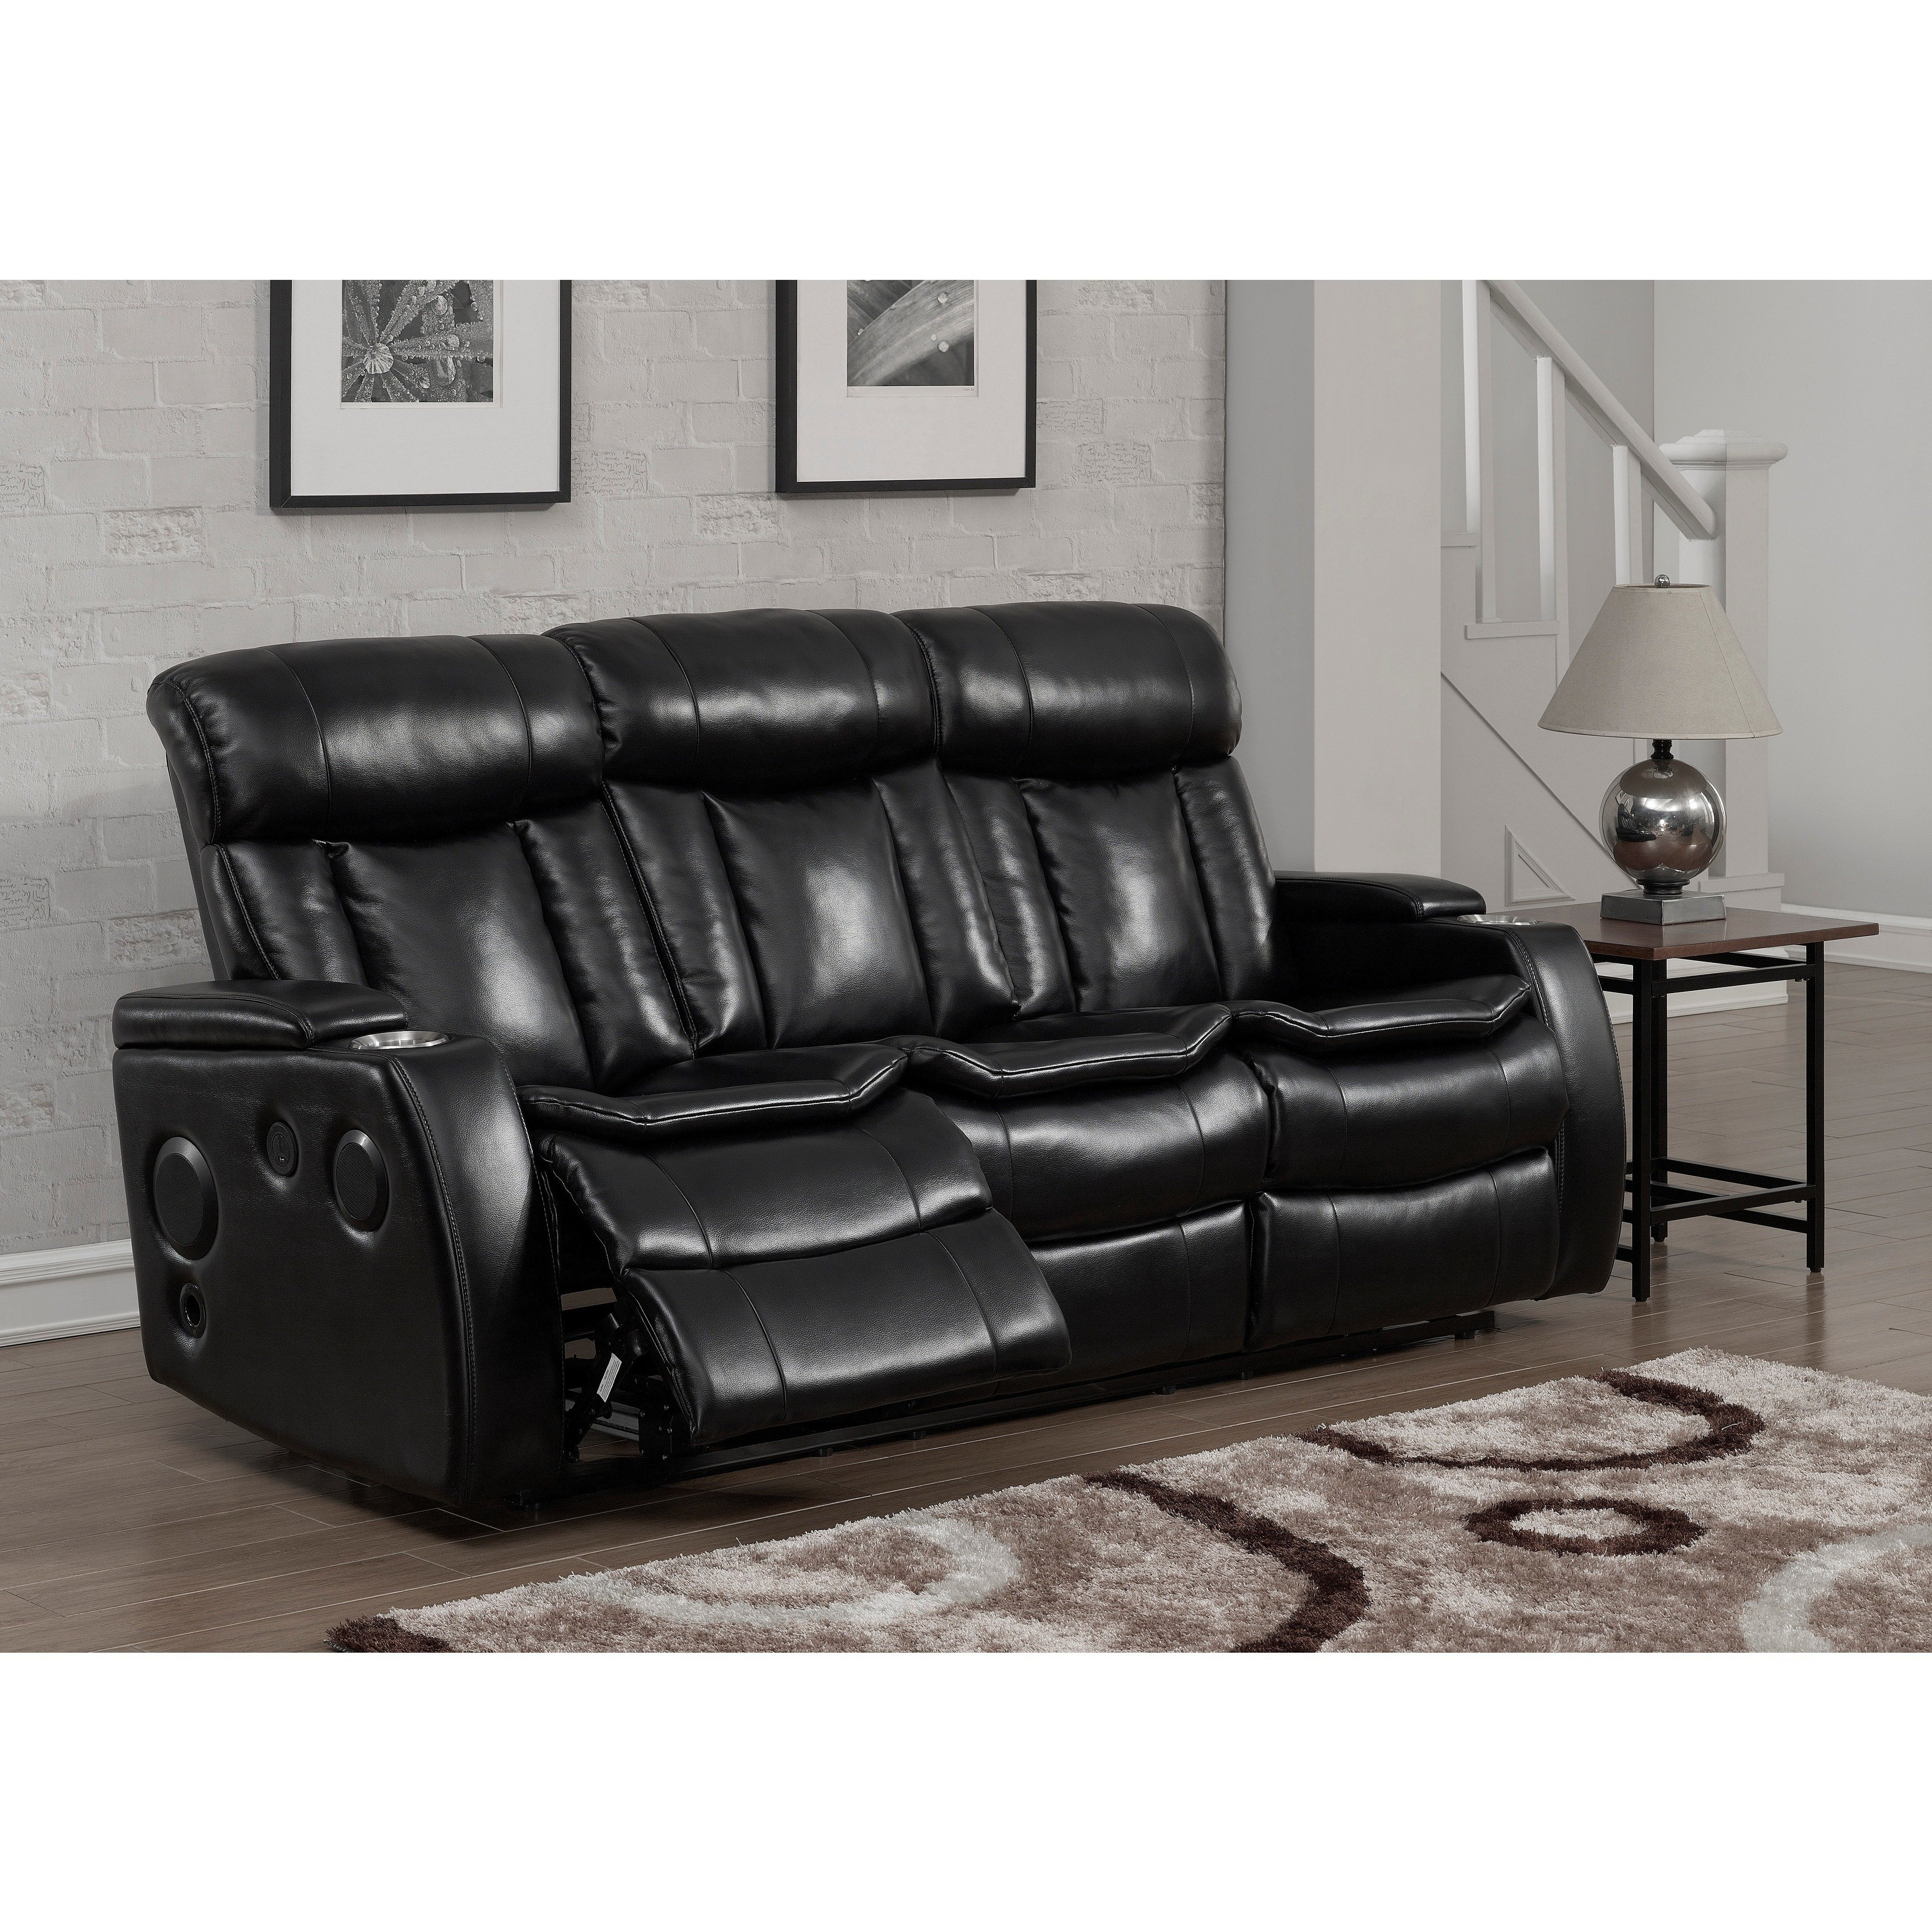 Delano Power Reclining Sofa With Usb | Baci Living Room Regarding Delano Smoke 3 Piece Sectionals (View 13 of 25)